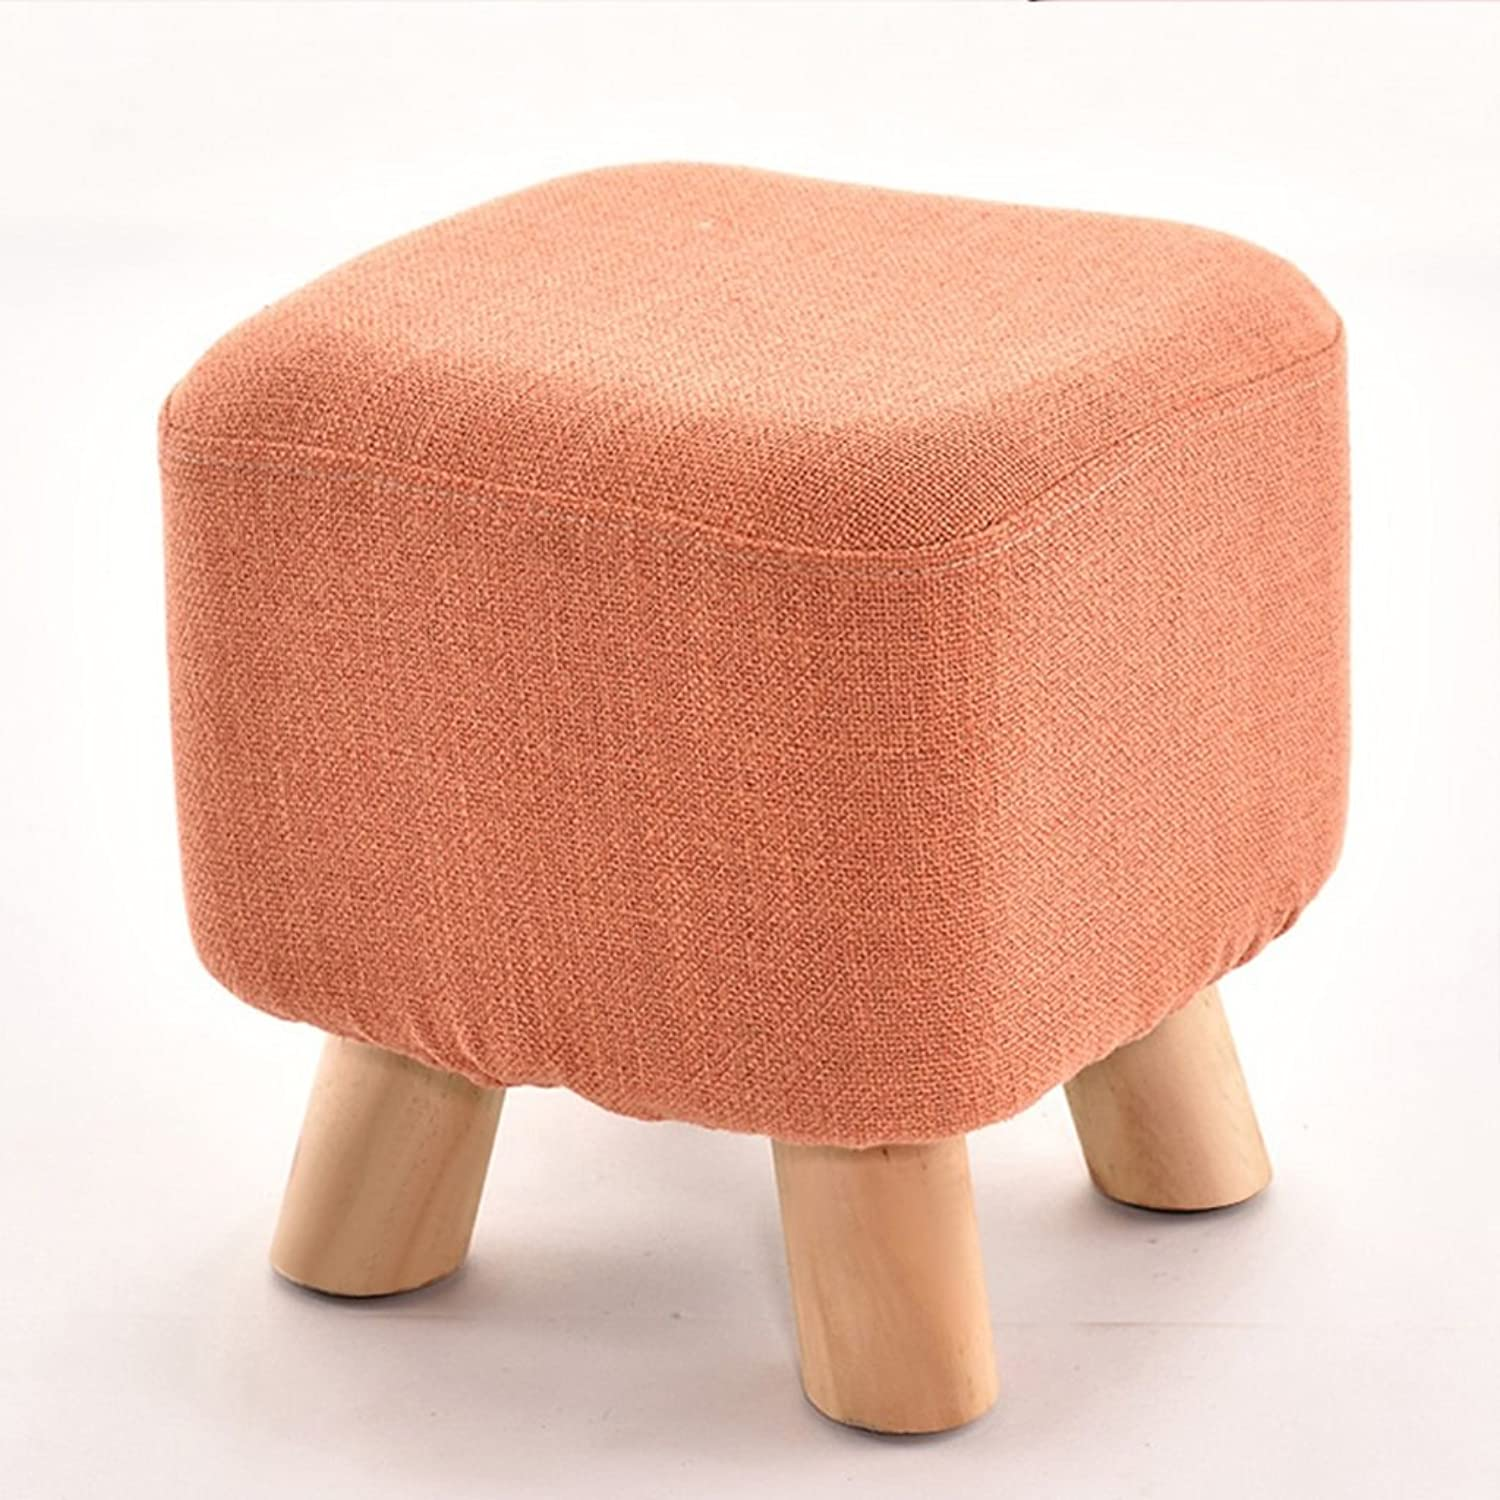 SJB Low stools Lazy Stool Home Fashion Footstool Creative stools Bed Sofa Coffee Table Stool Adult Solid Wood shoes Bench shoes Stool Home Bench (color   orange)